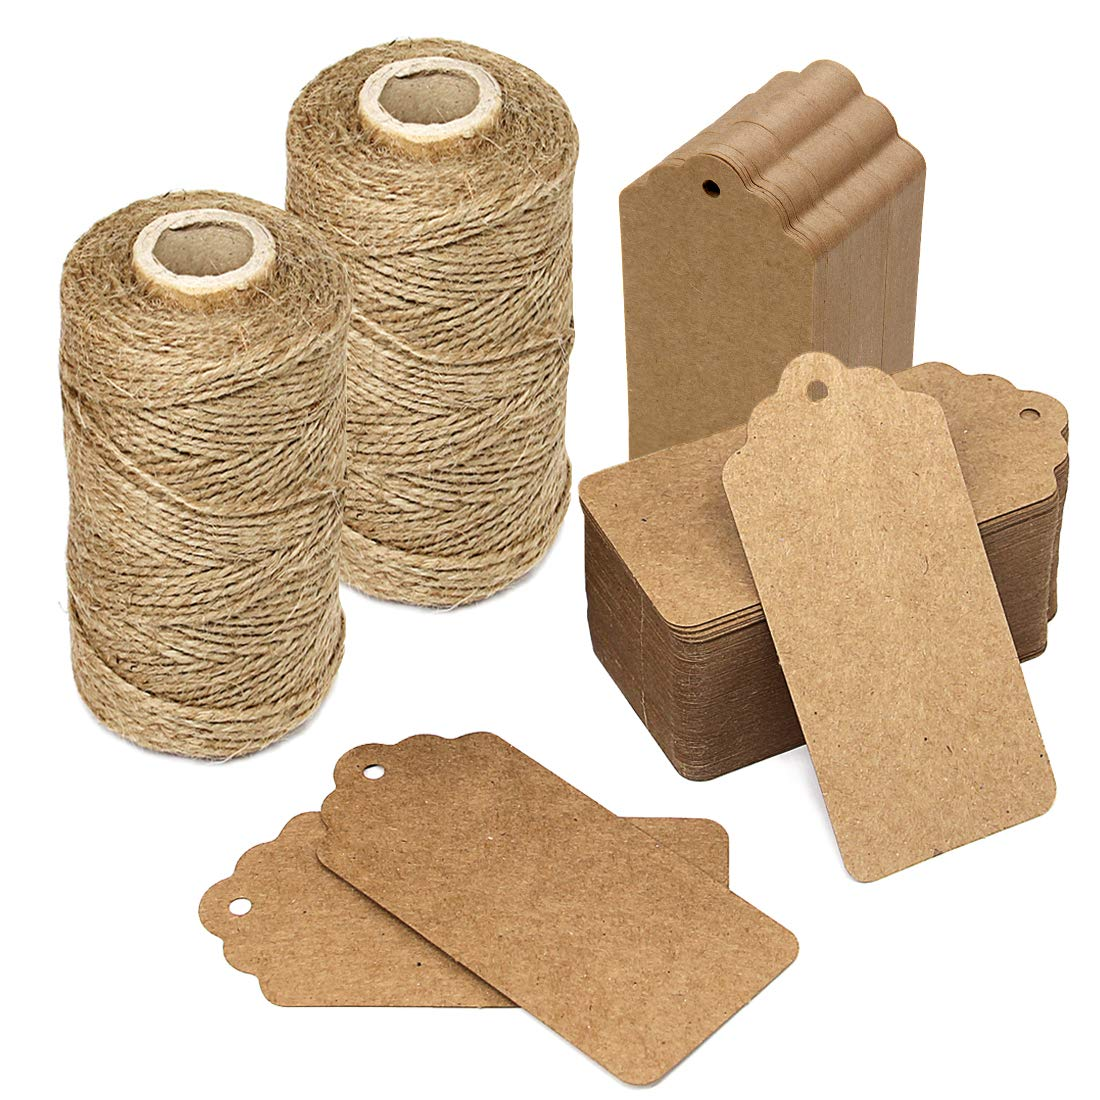 600 Feet Natural Jute Twine and 200 PCS Brown Retangle Kraft Paper Gift Tags for Crafts & Price Tags Lables by Blisstime